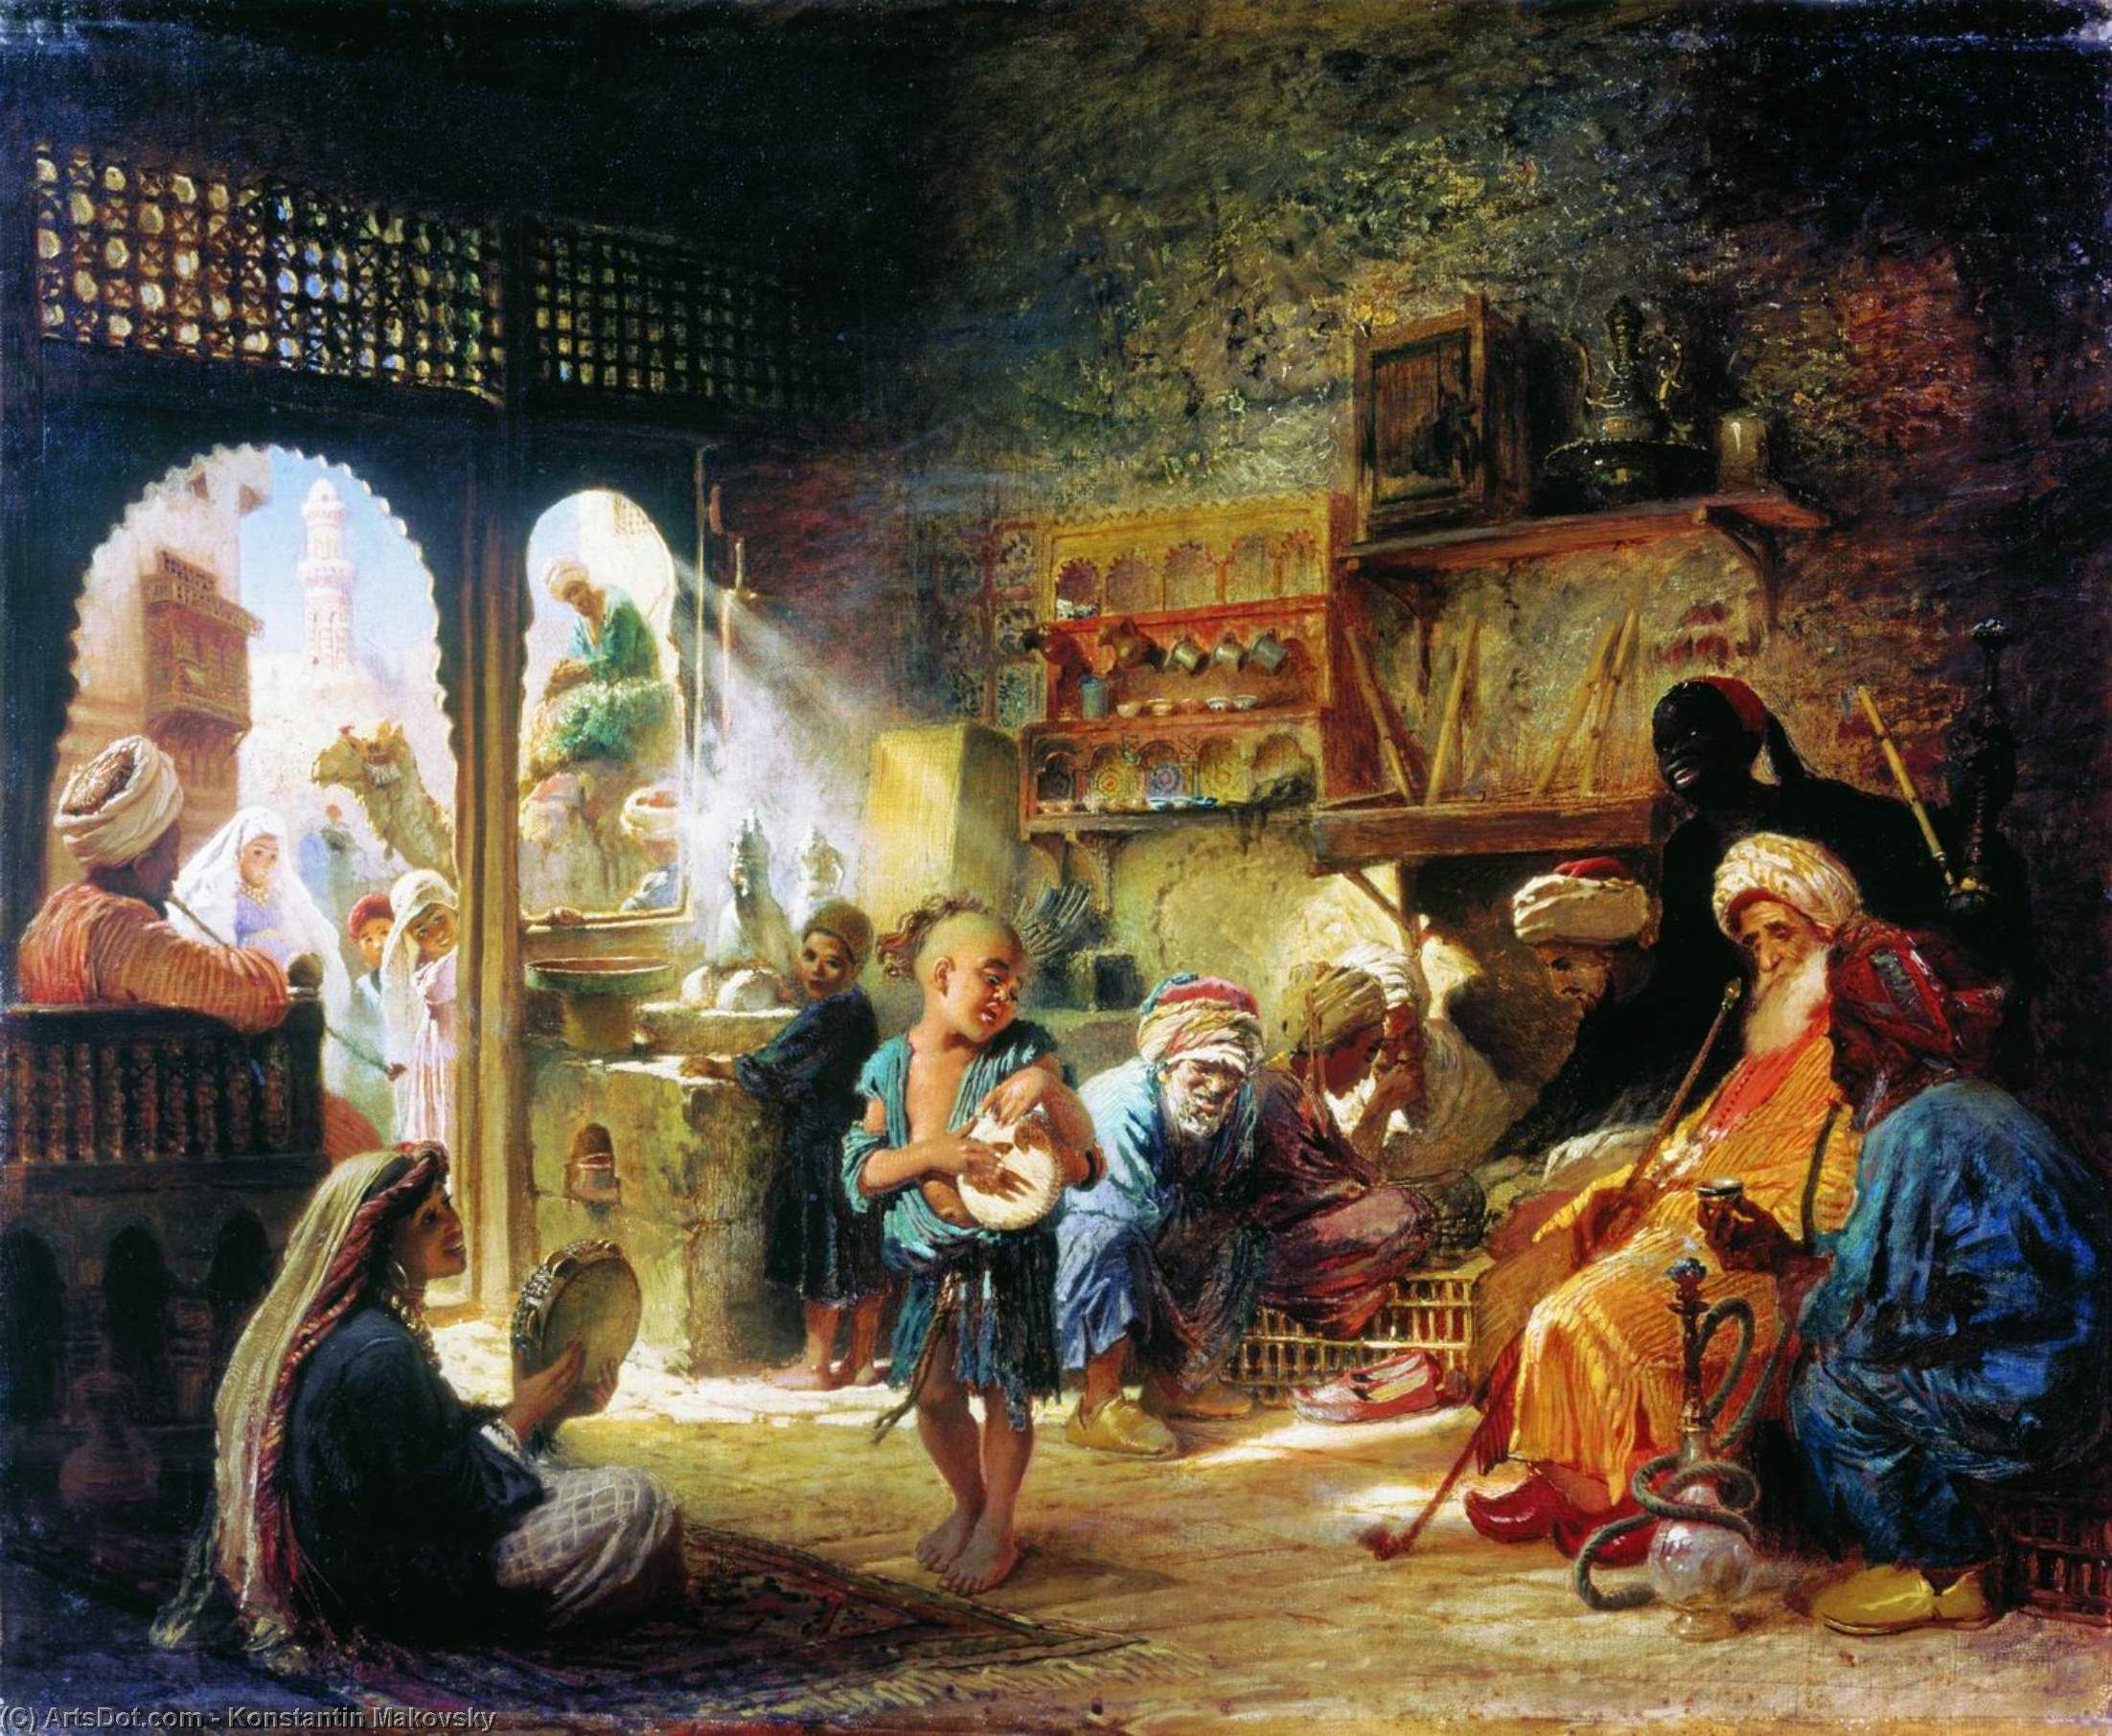 Coffee House in Kairo, öl auf leinwand von Konstantin Makovsky (1839-1915, Russian Empire)